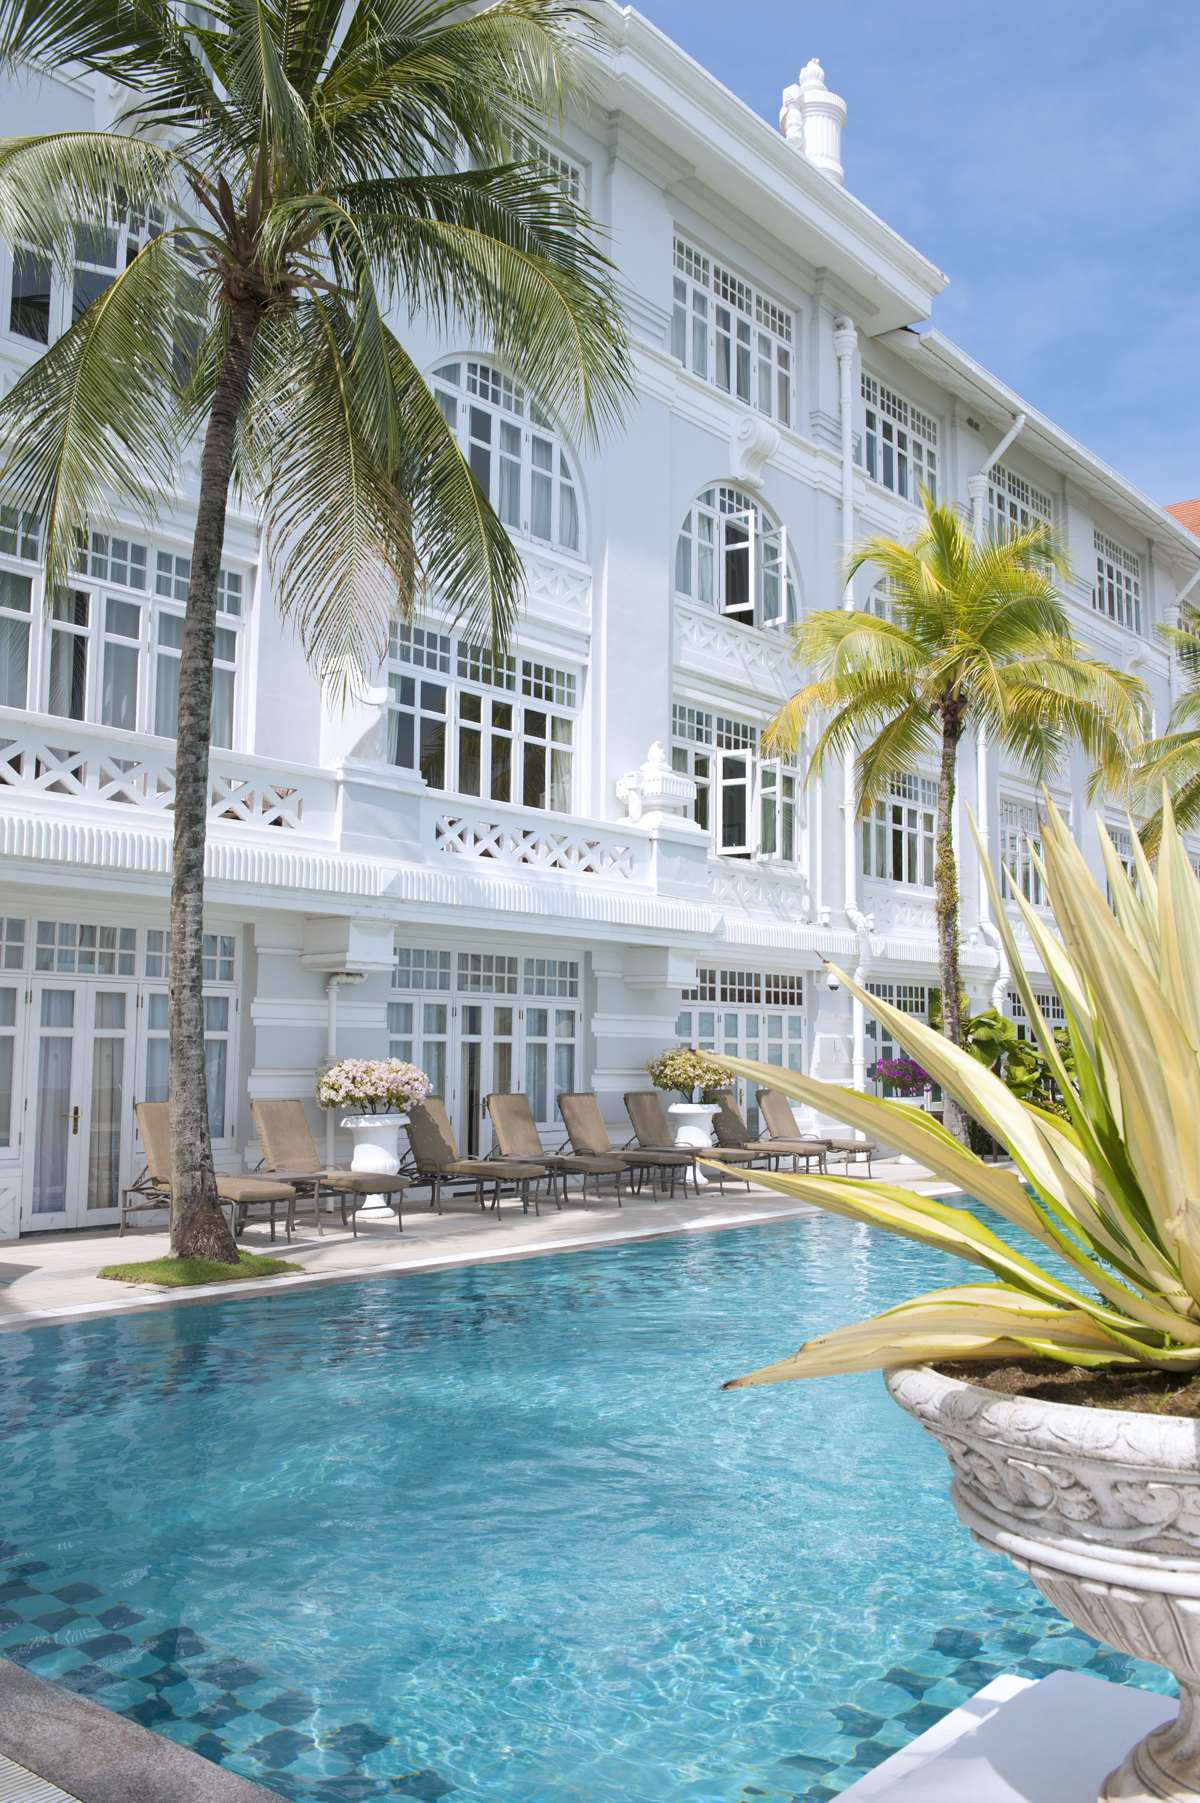 E&O Hotel Penang, A hotel purely on its historical heritage, fine name and luxury rating.